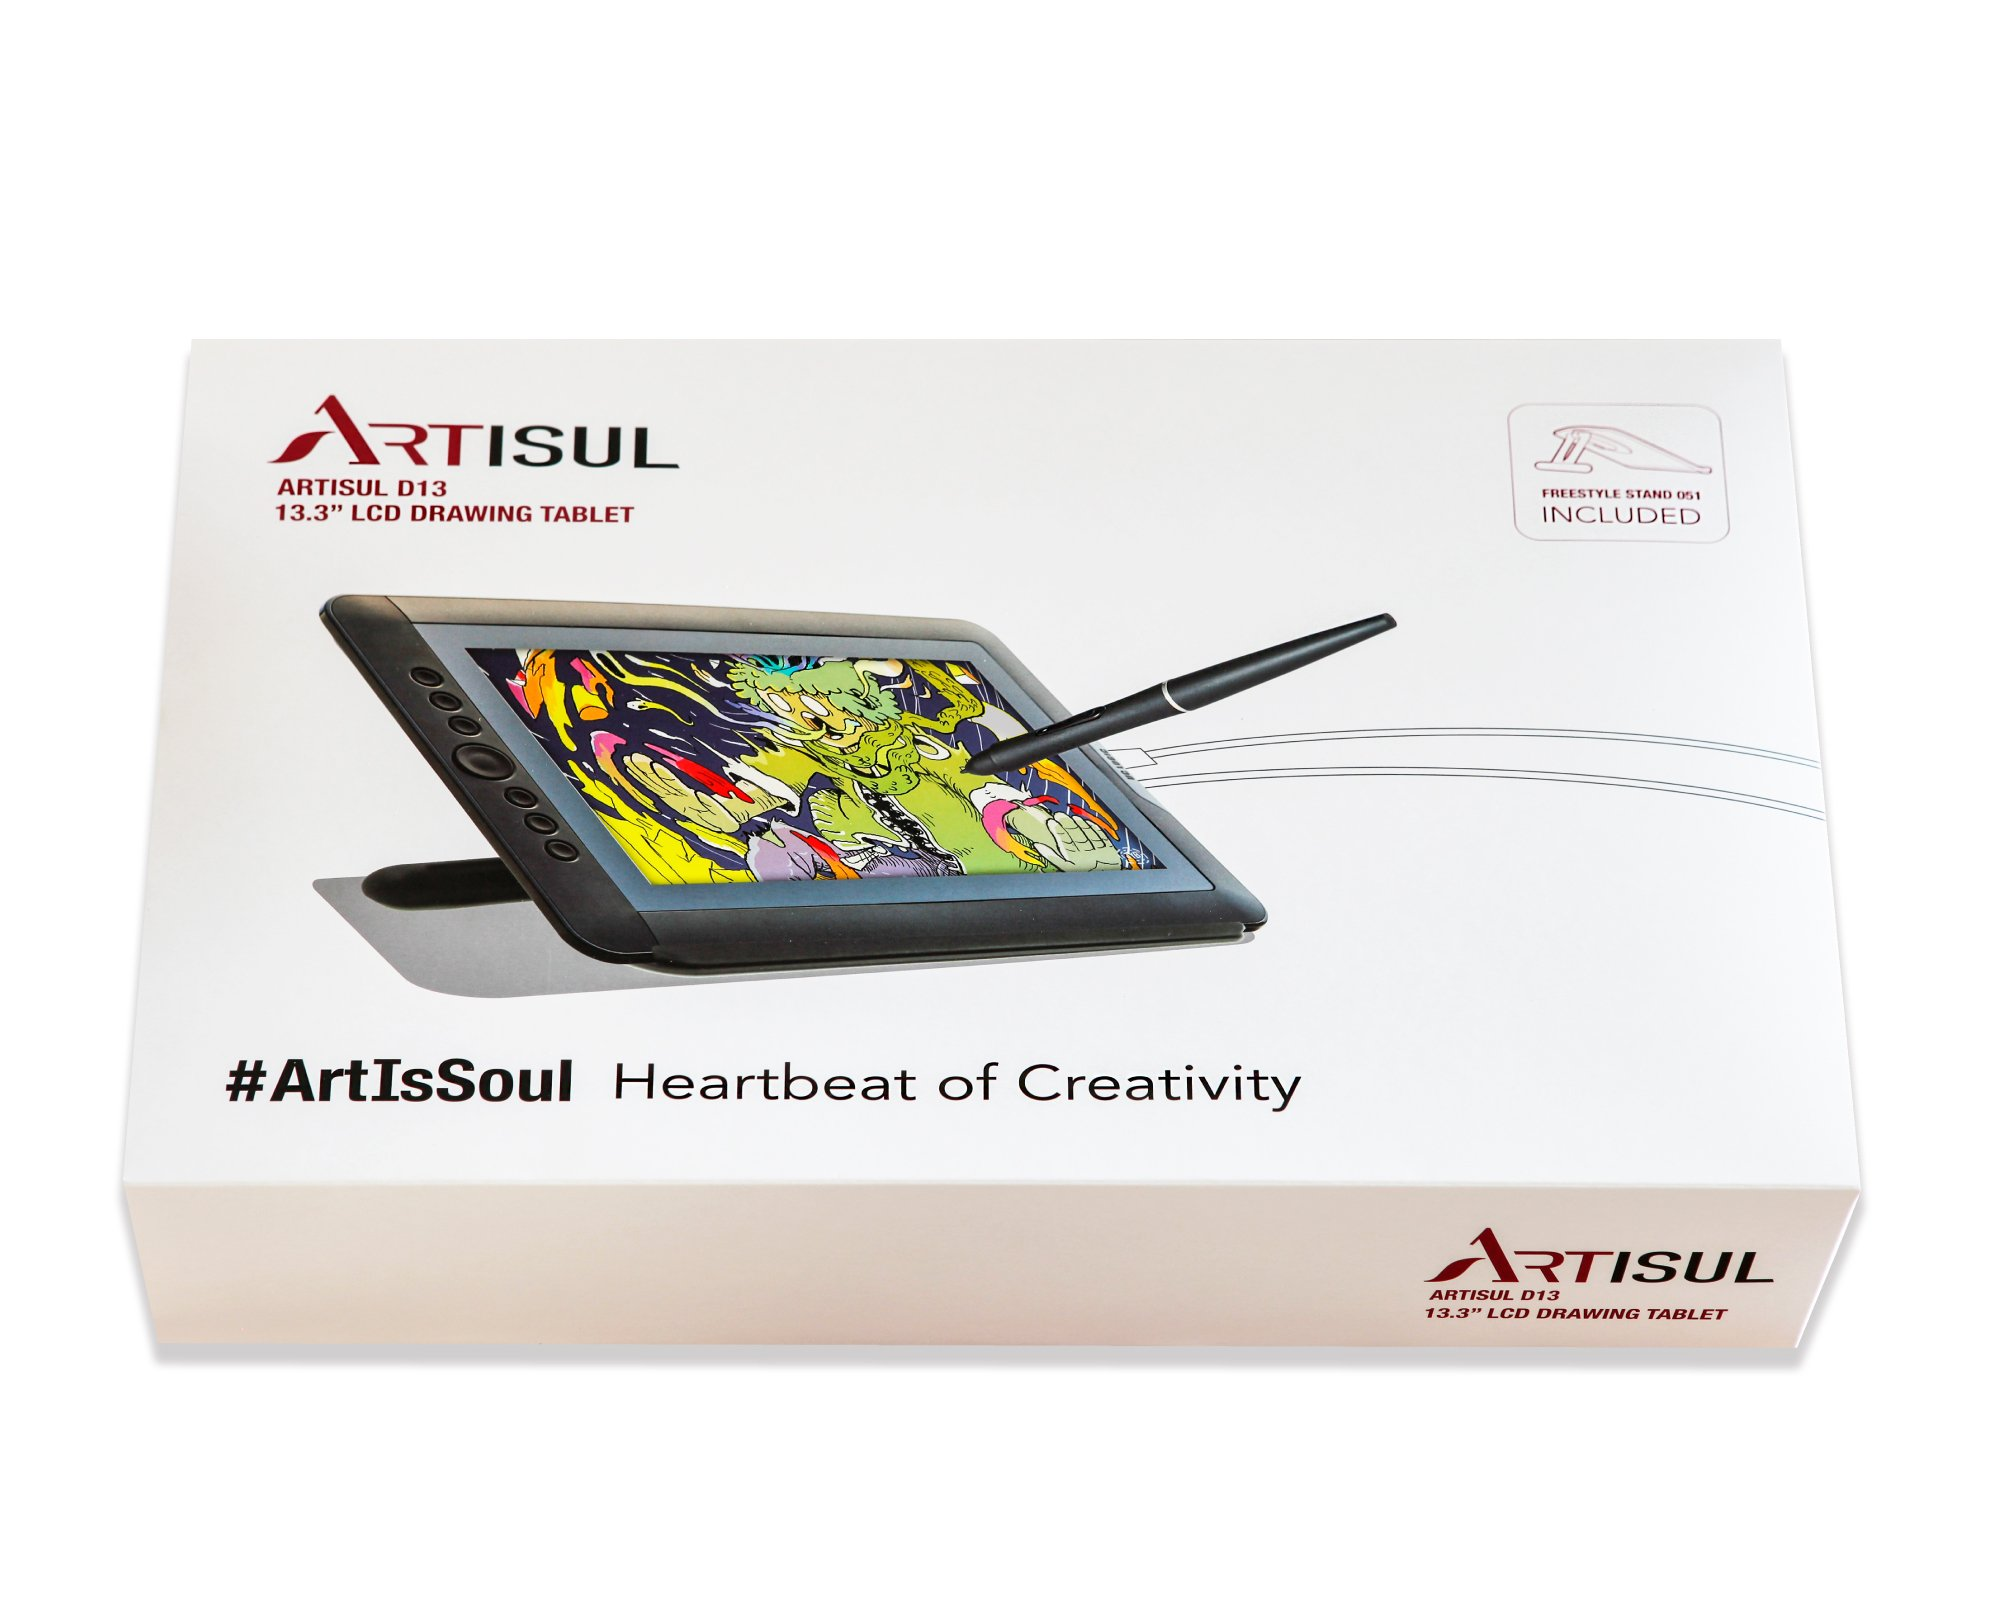 Artisul D13 - 13.3'' LCD Graphics Tablet with Display + Freestyle Stand Bundle